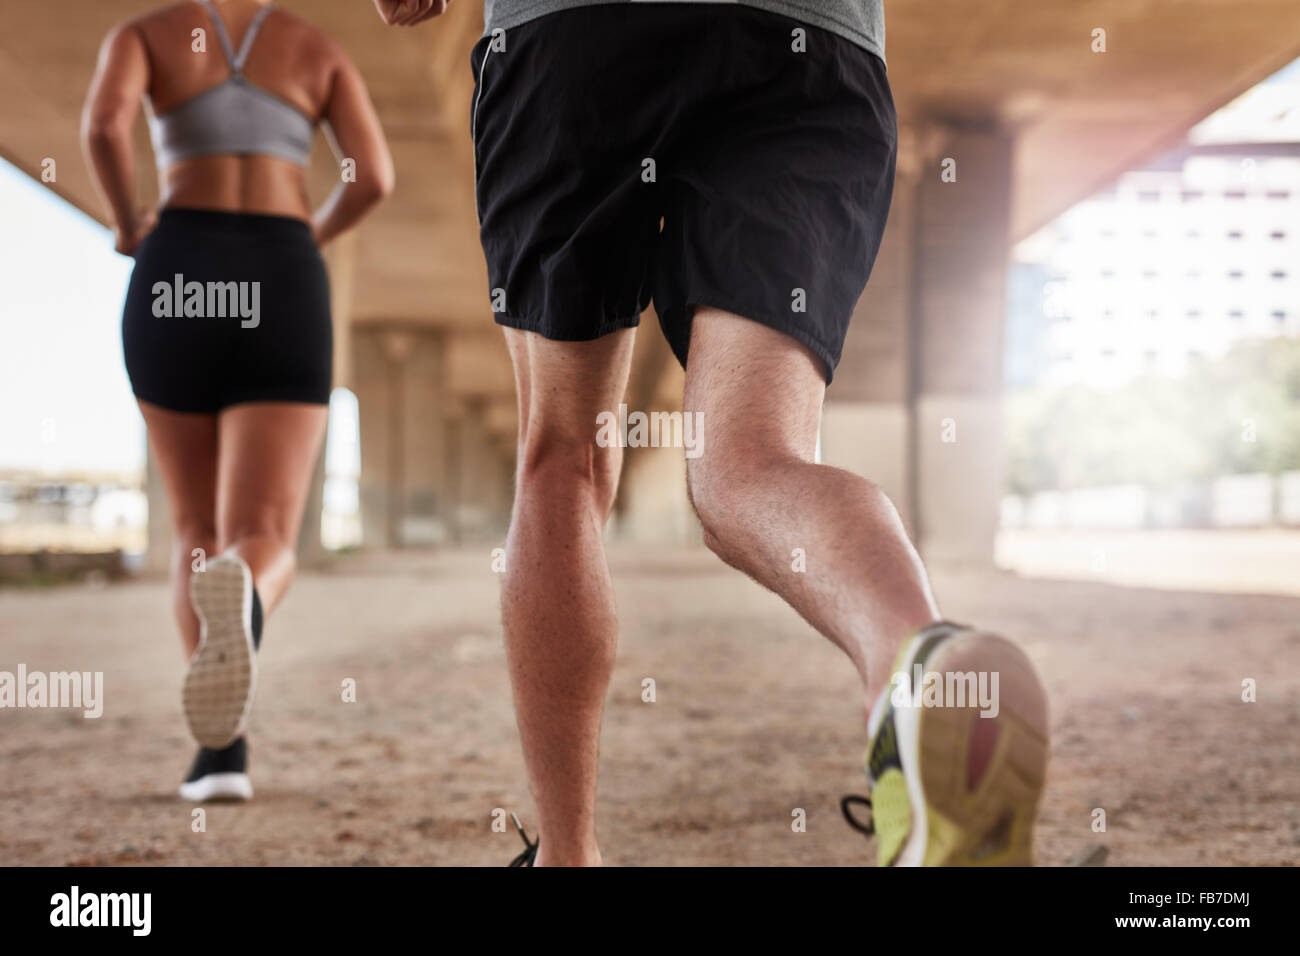 Cropped shot of a two young people running under the bridge in the city. Focus on legs of runners. - Stock Image